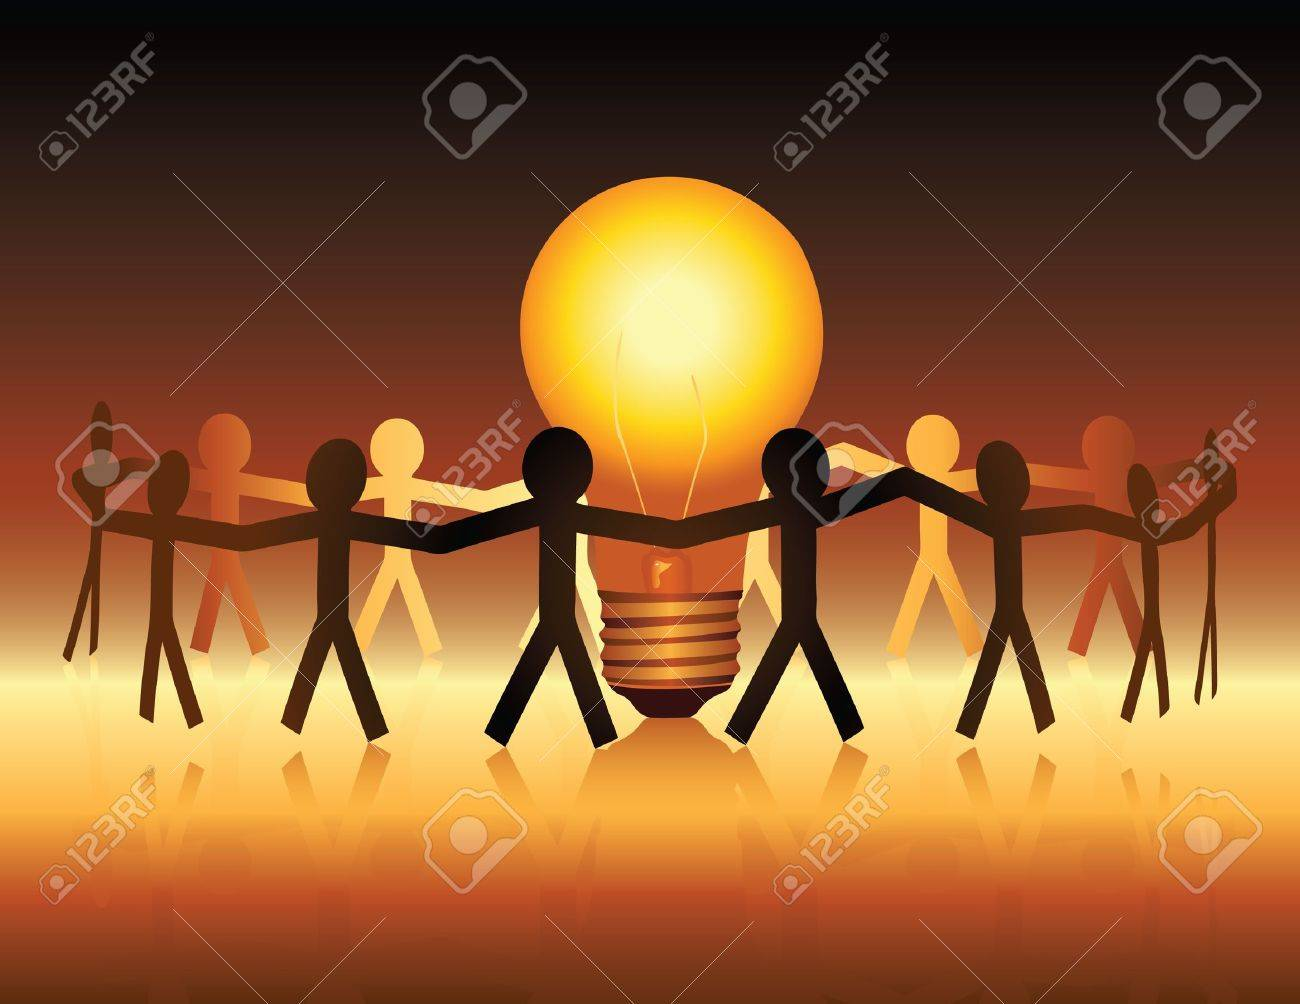 A conceptual illustration of a team of paper people uniting around a brightly lit light bulb - 9934533